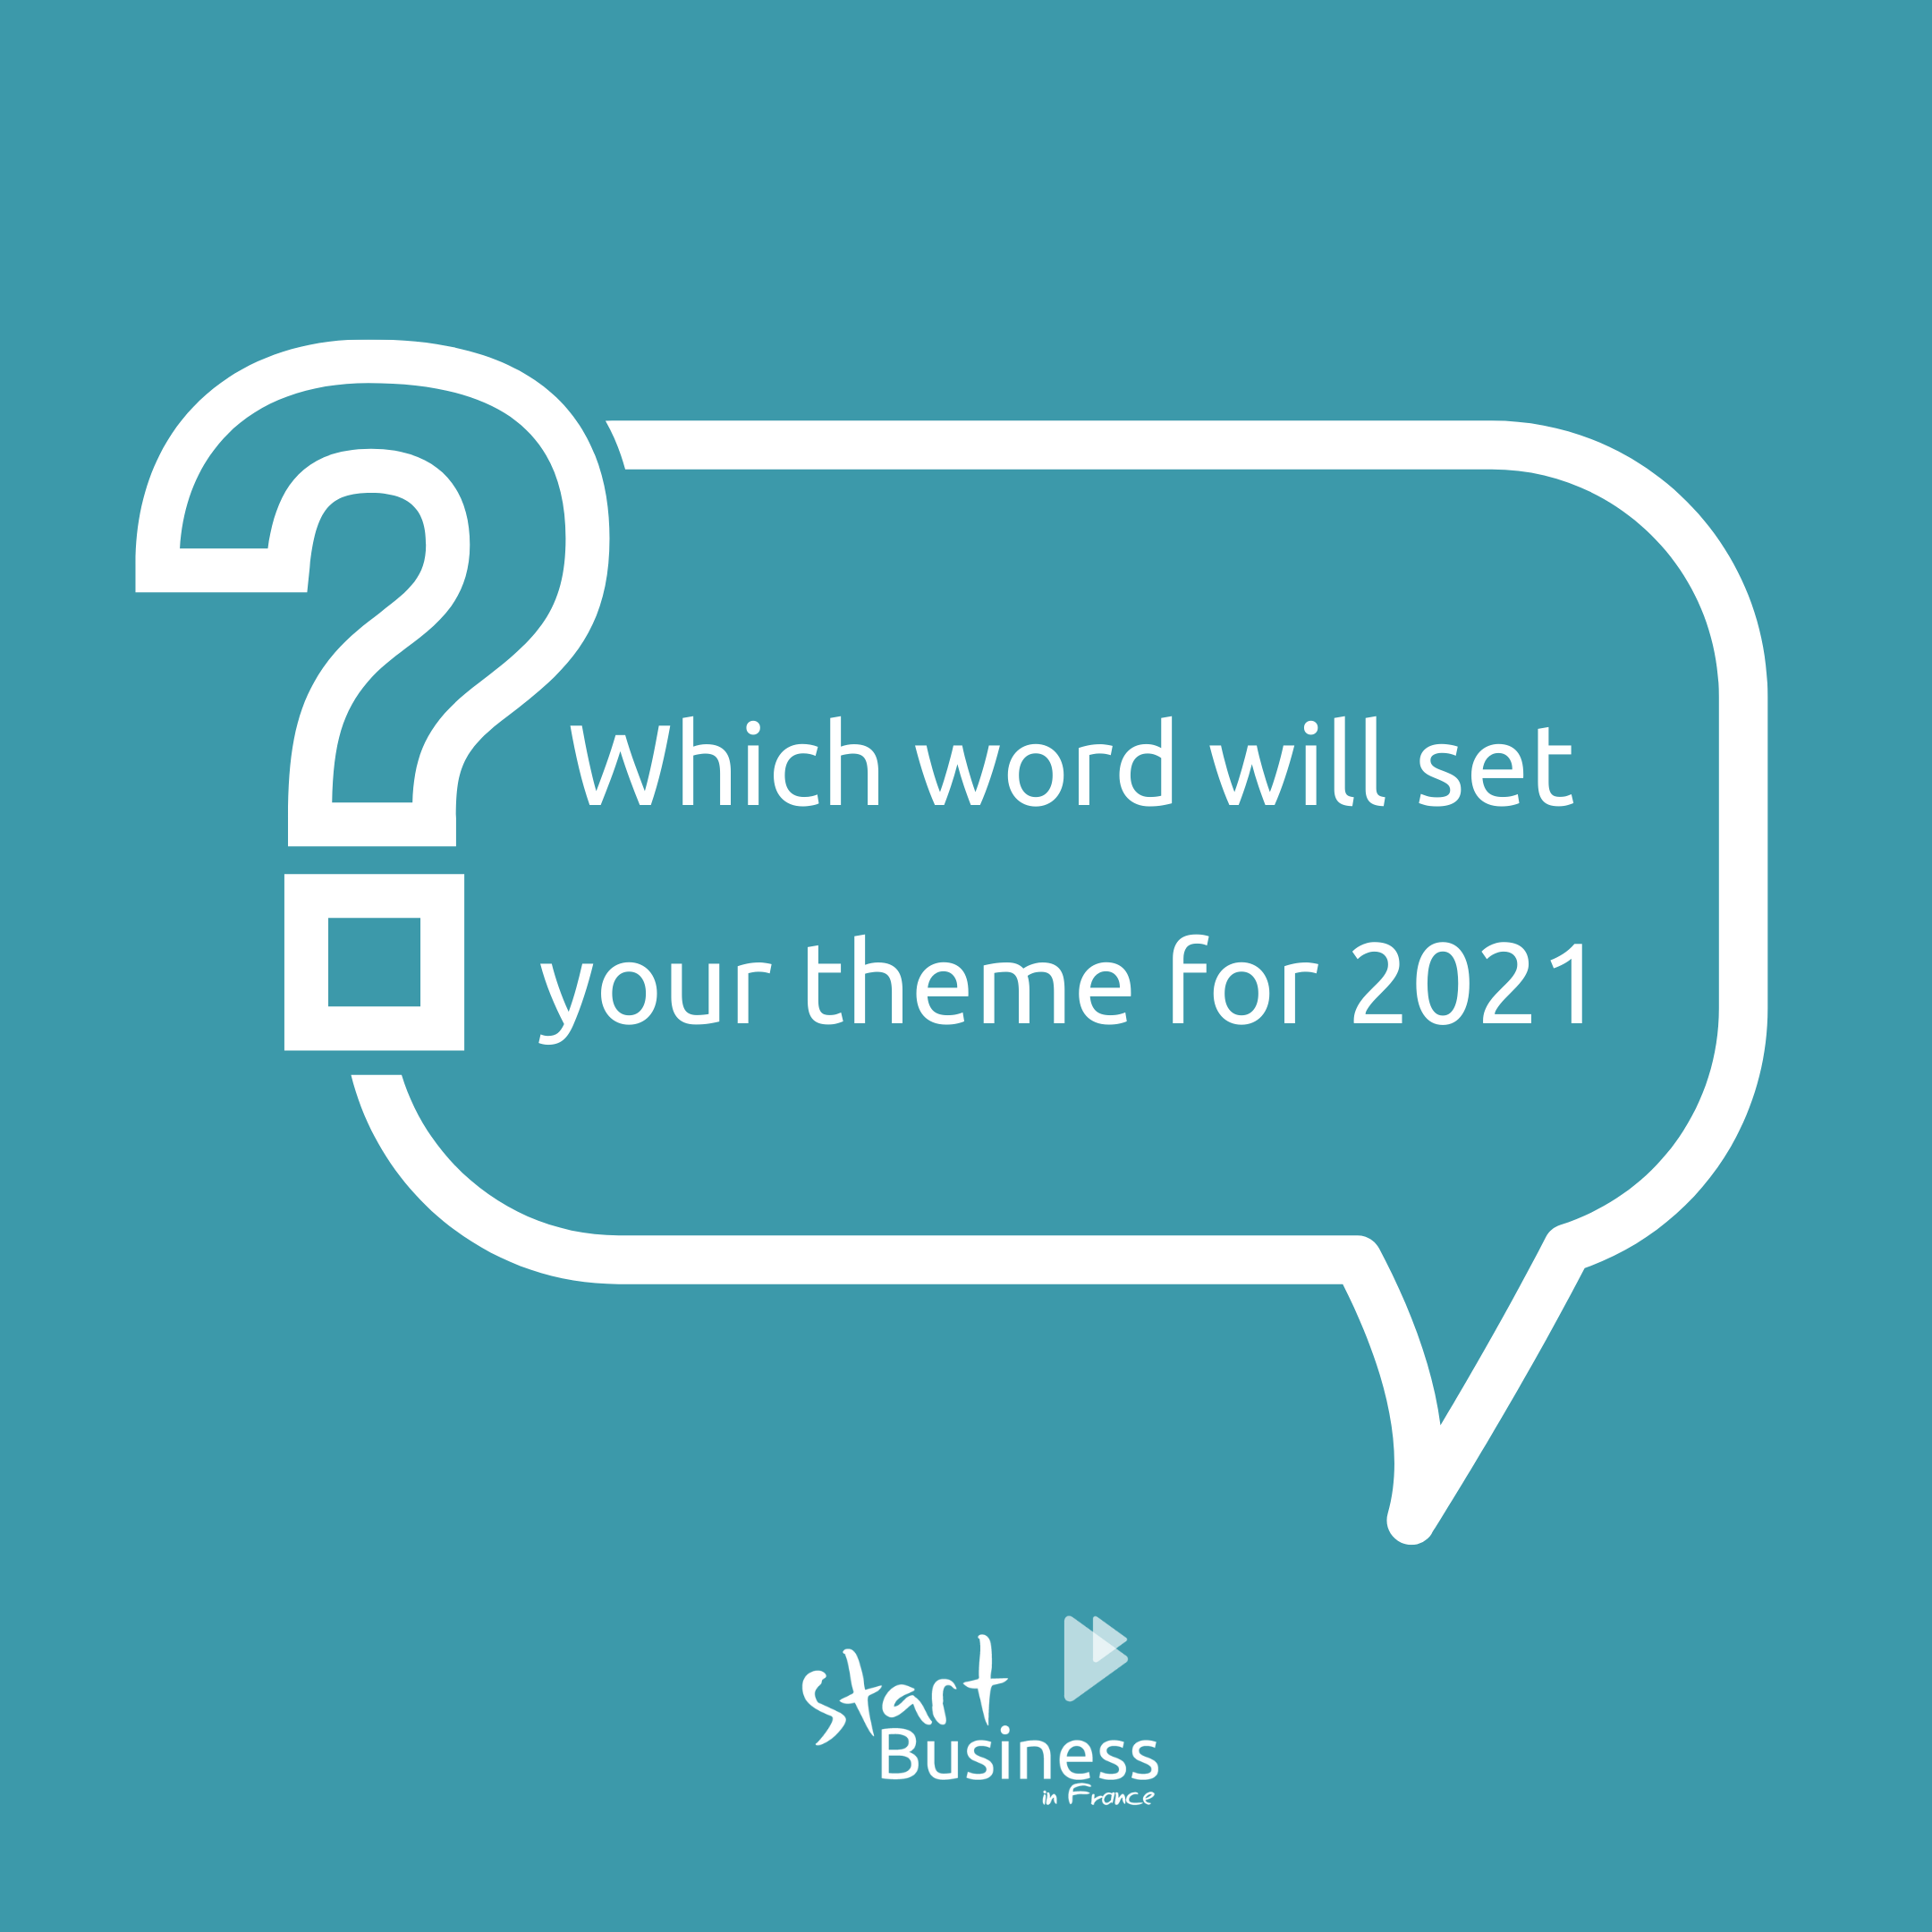 What is your word for 2021?